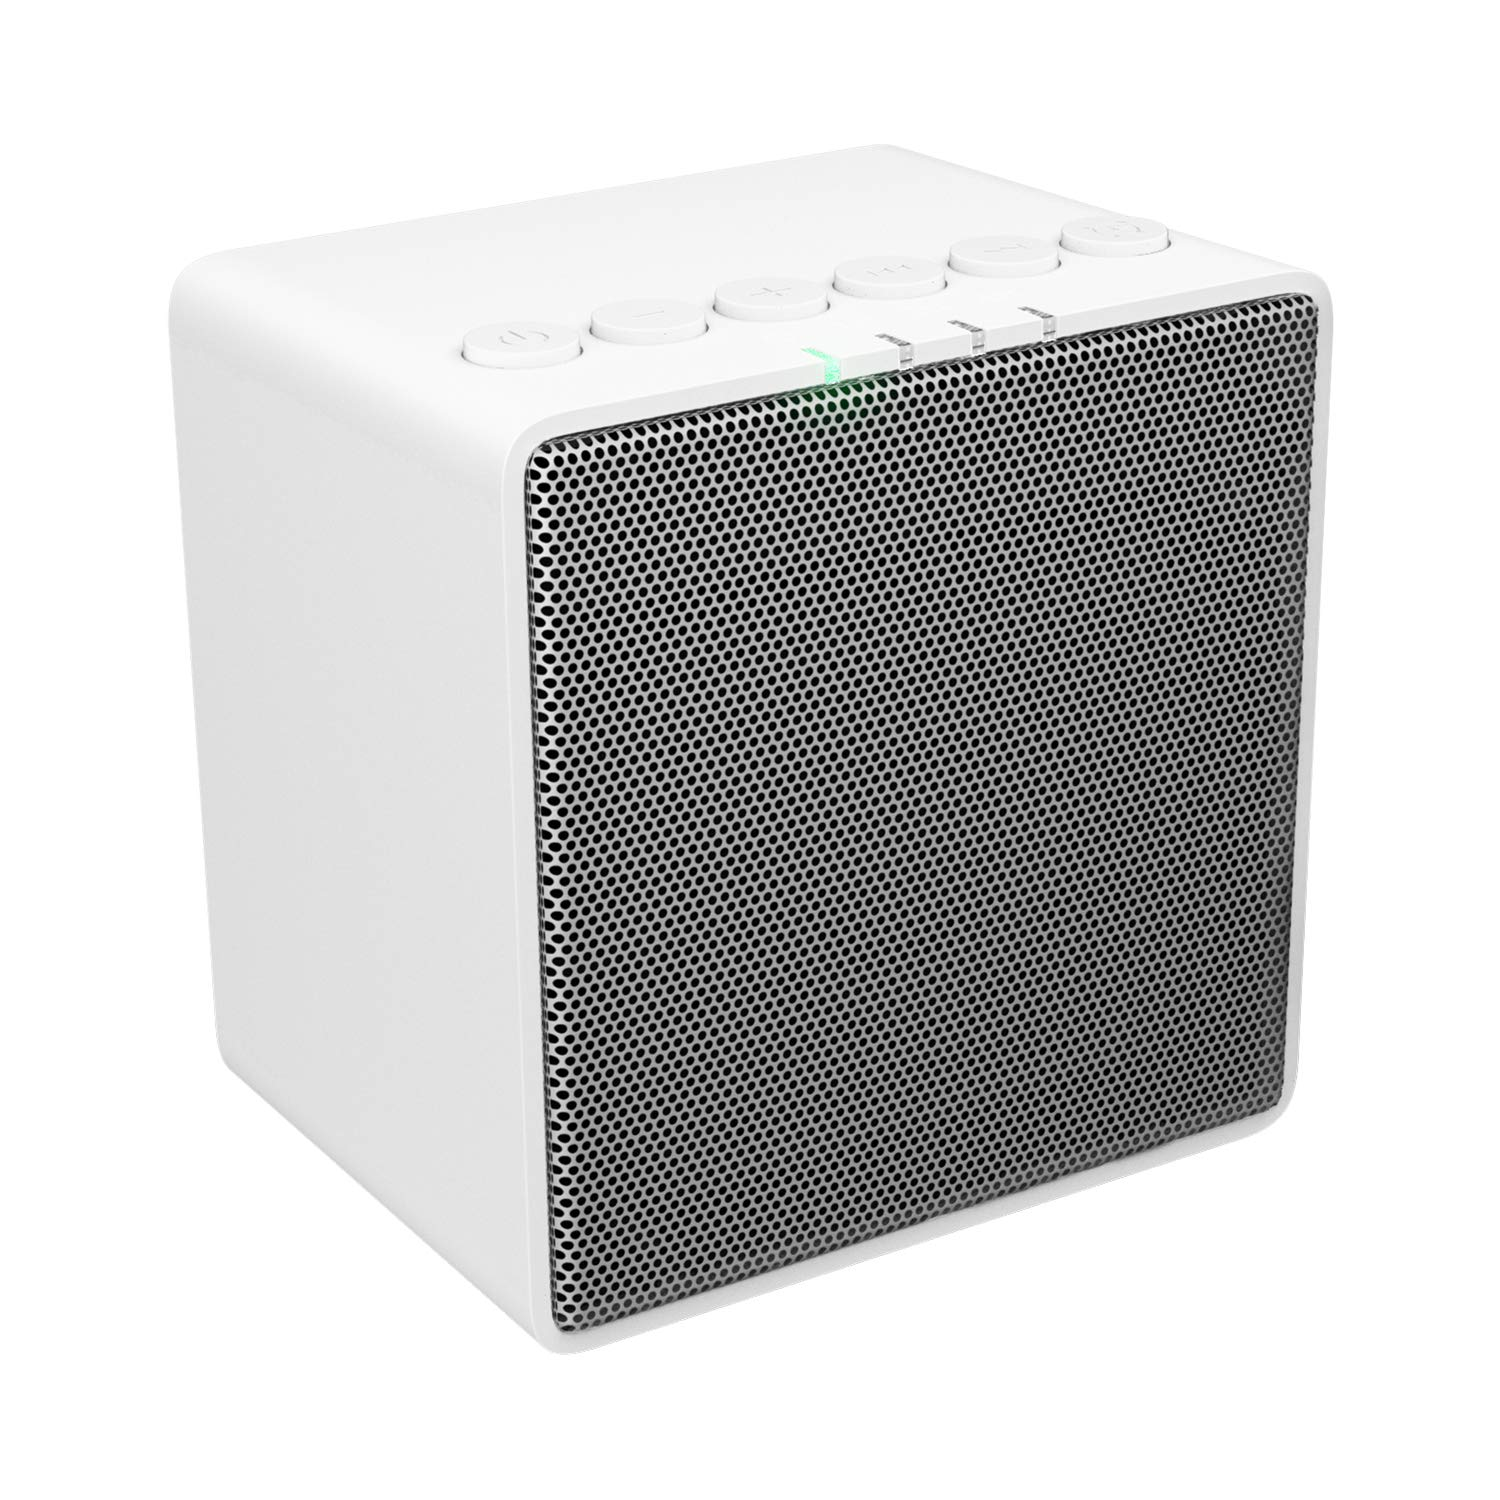 Portable White Noise Machine, Sleep Sound Machine with 30 Soothing Sounds for Relax and Sleeping, Suitble for Travel and Privacy Office by X-Sense